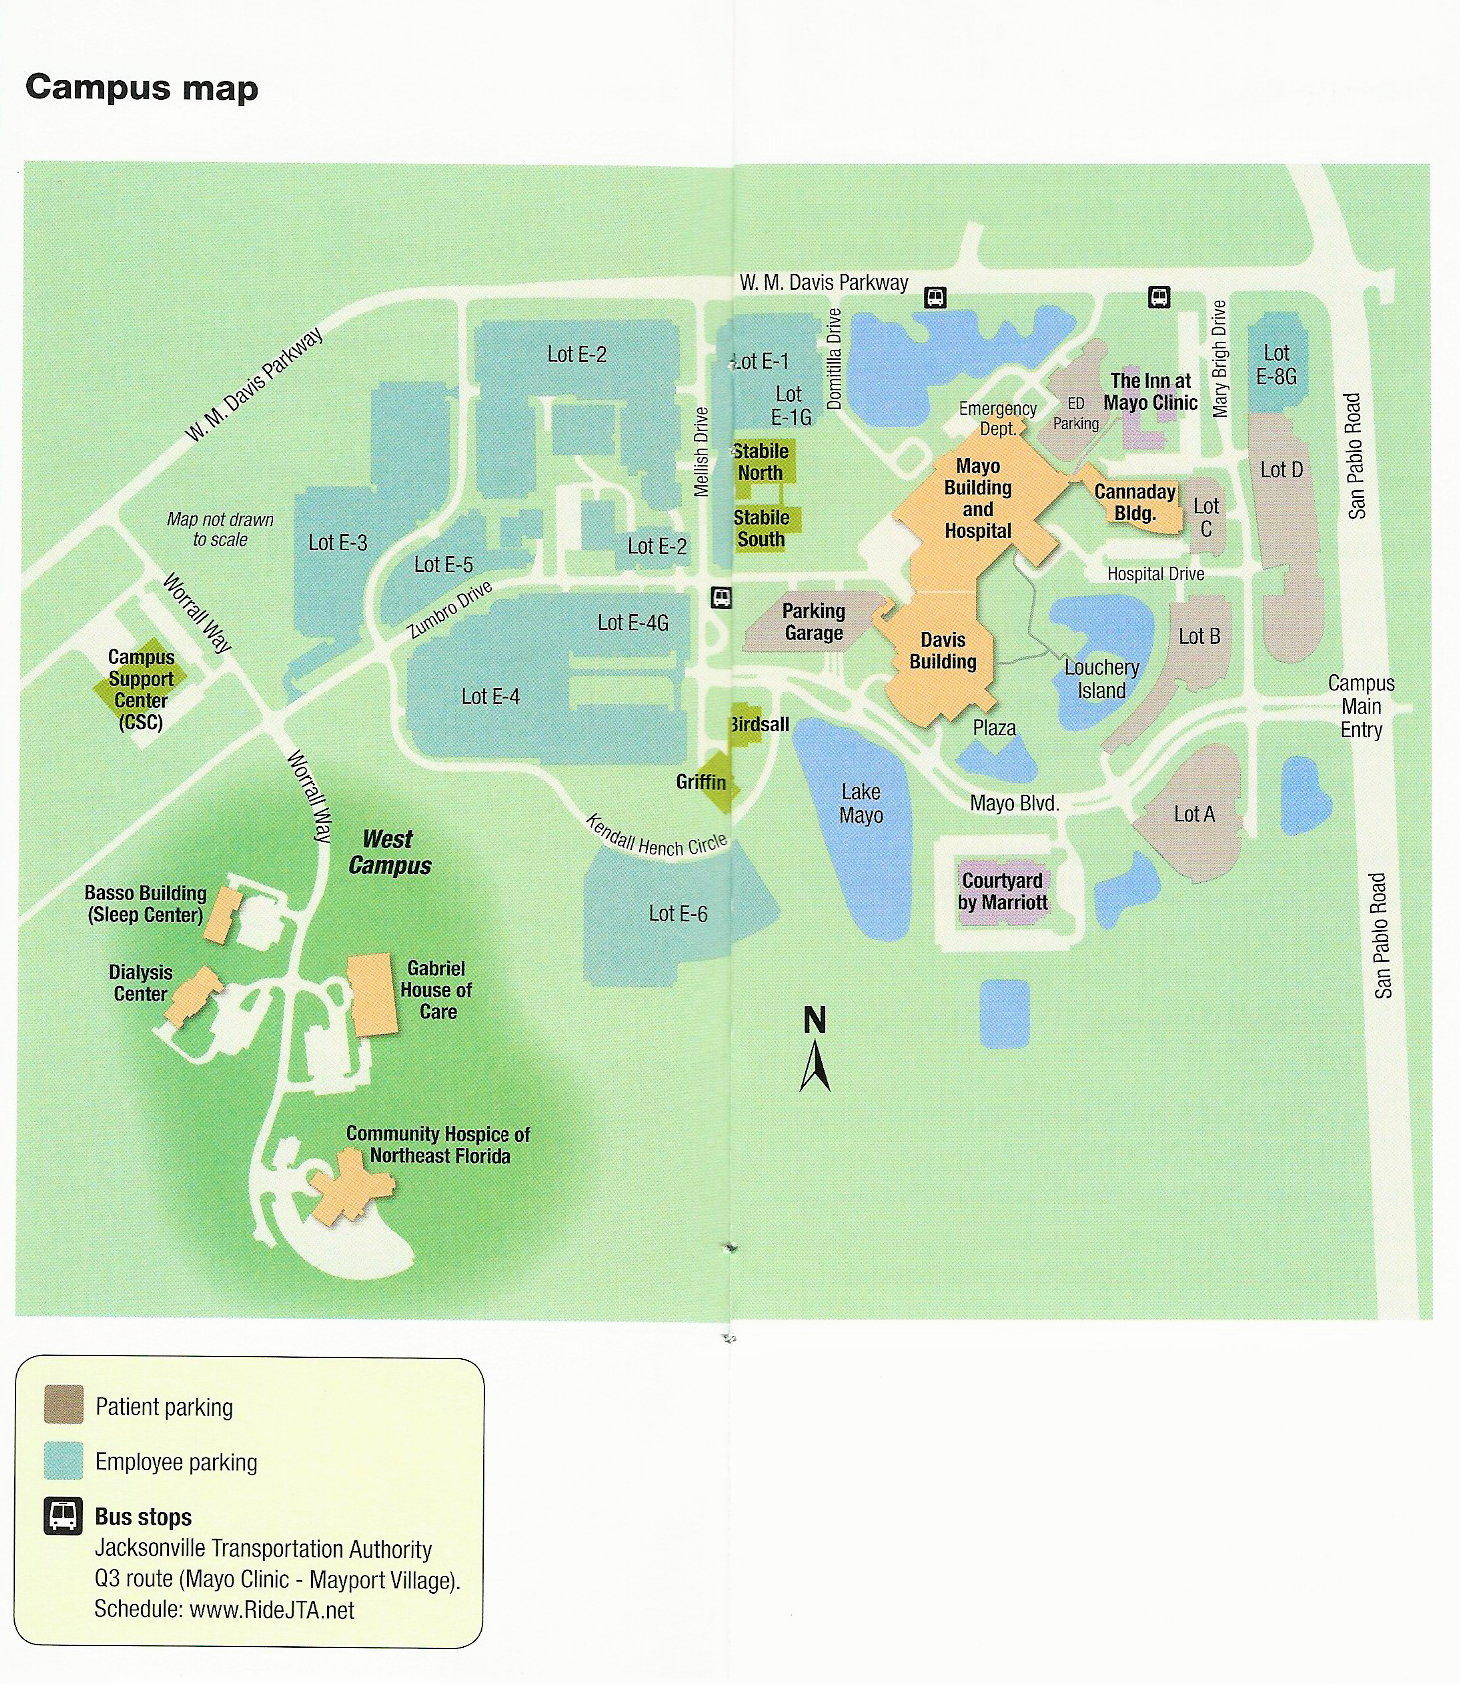 Mayo Clinic Florida Campus Map | Mayo Clinic In Florida | Pinterest - Mayo Clinic Florida Map